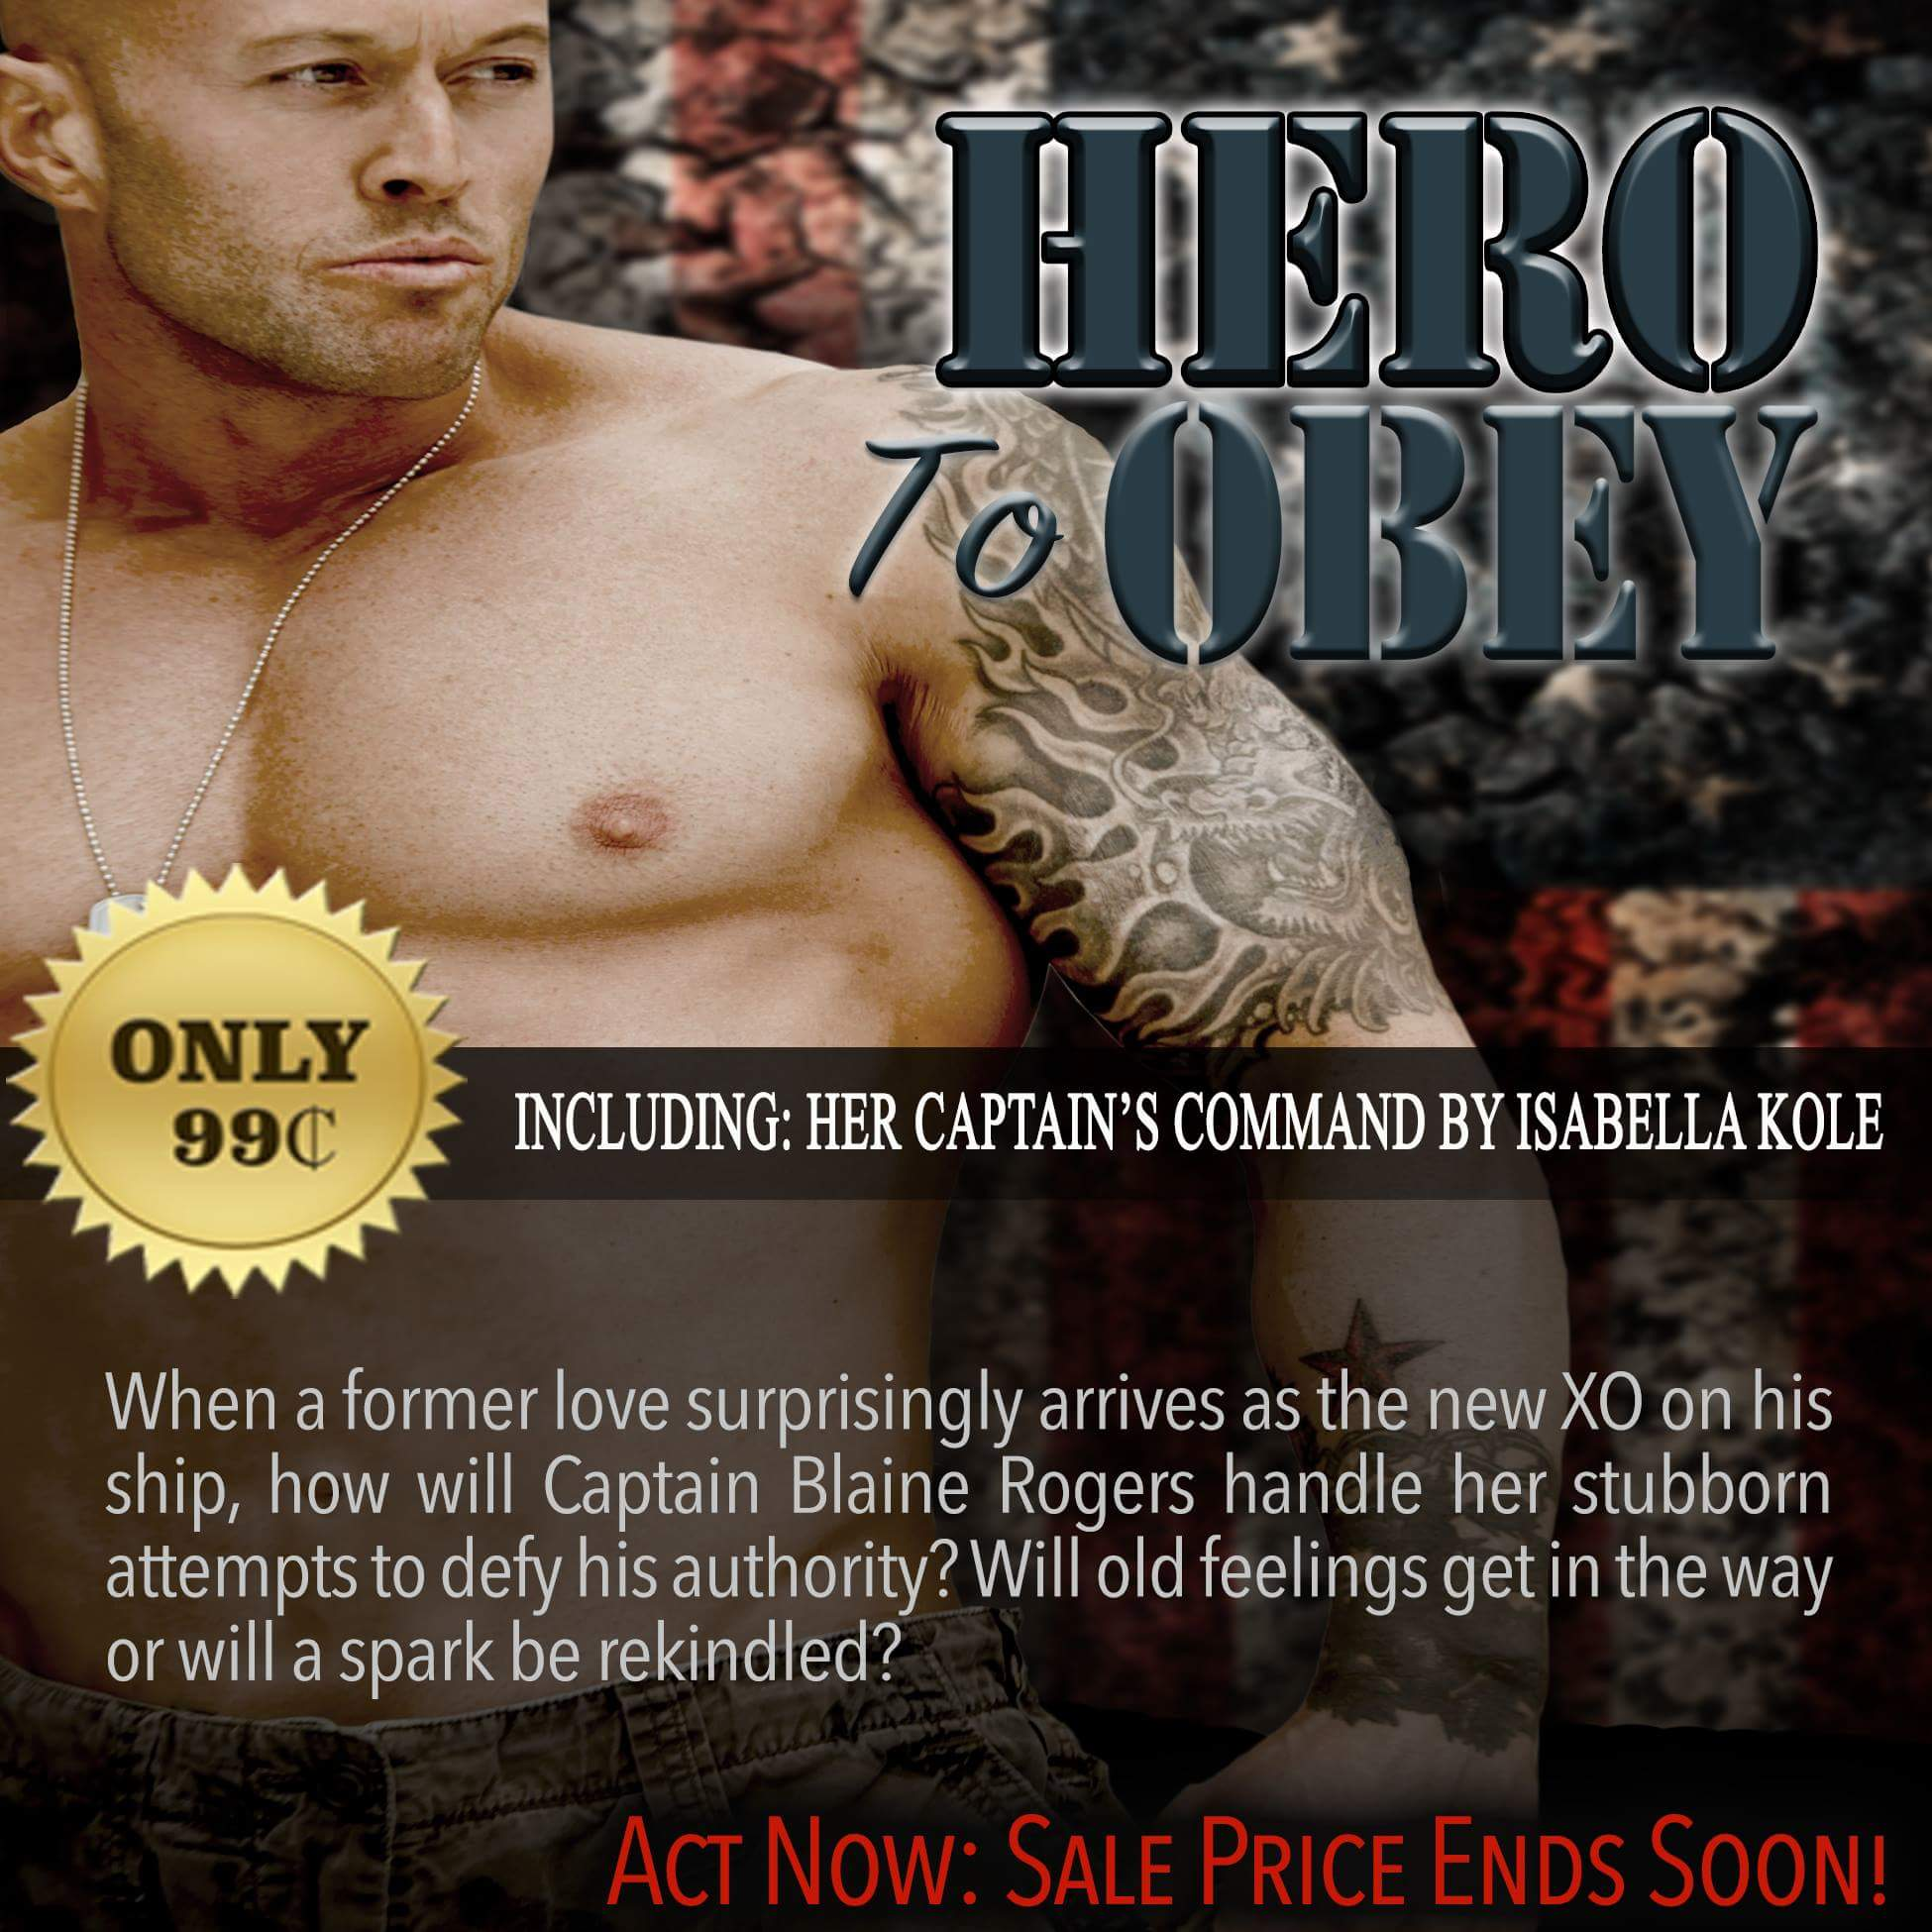 Hero To Obey Book Cover Model Actor John Joseph Quinlan by Isabella Kole #JohnQuinlan #Hero2obey